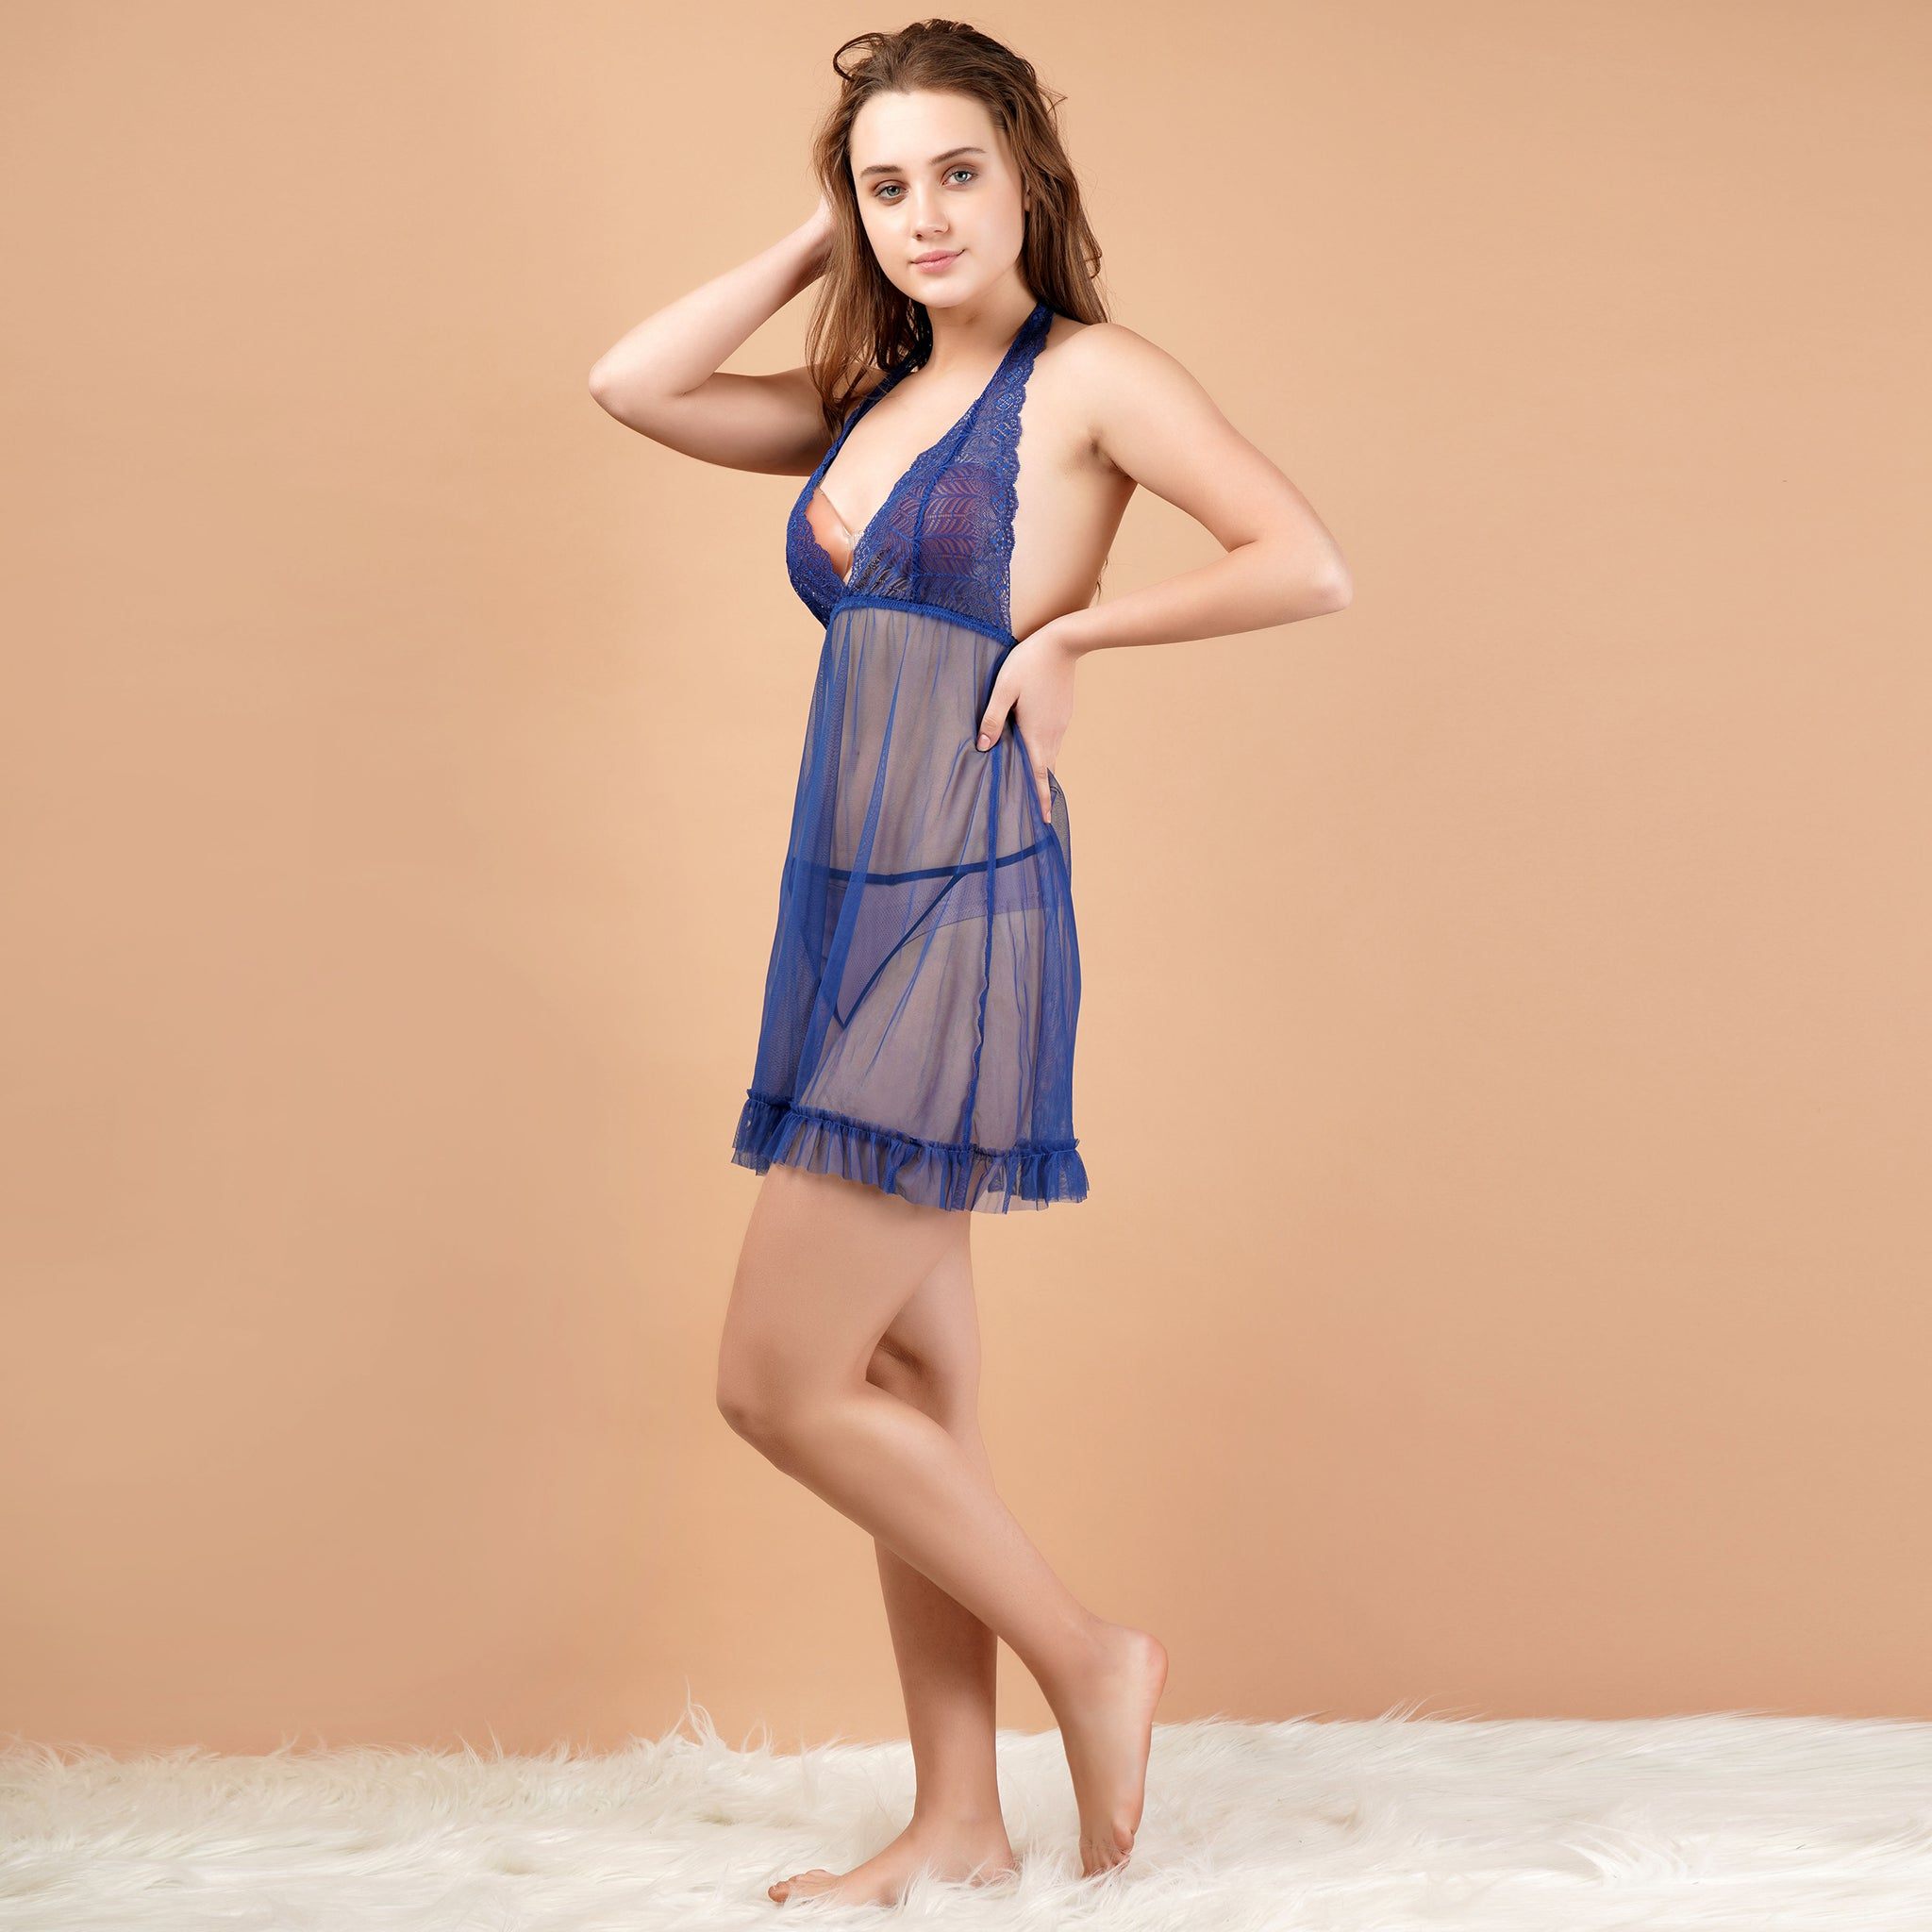 Ficuster Halter Neck Floral Lace Navy Blue Babydoll Nightwear